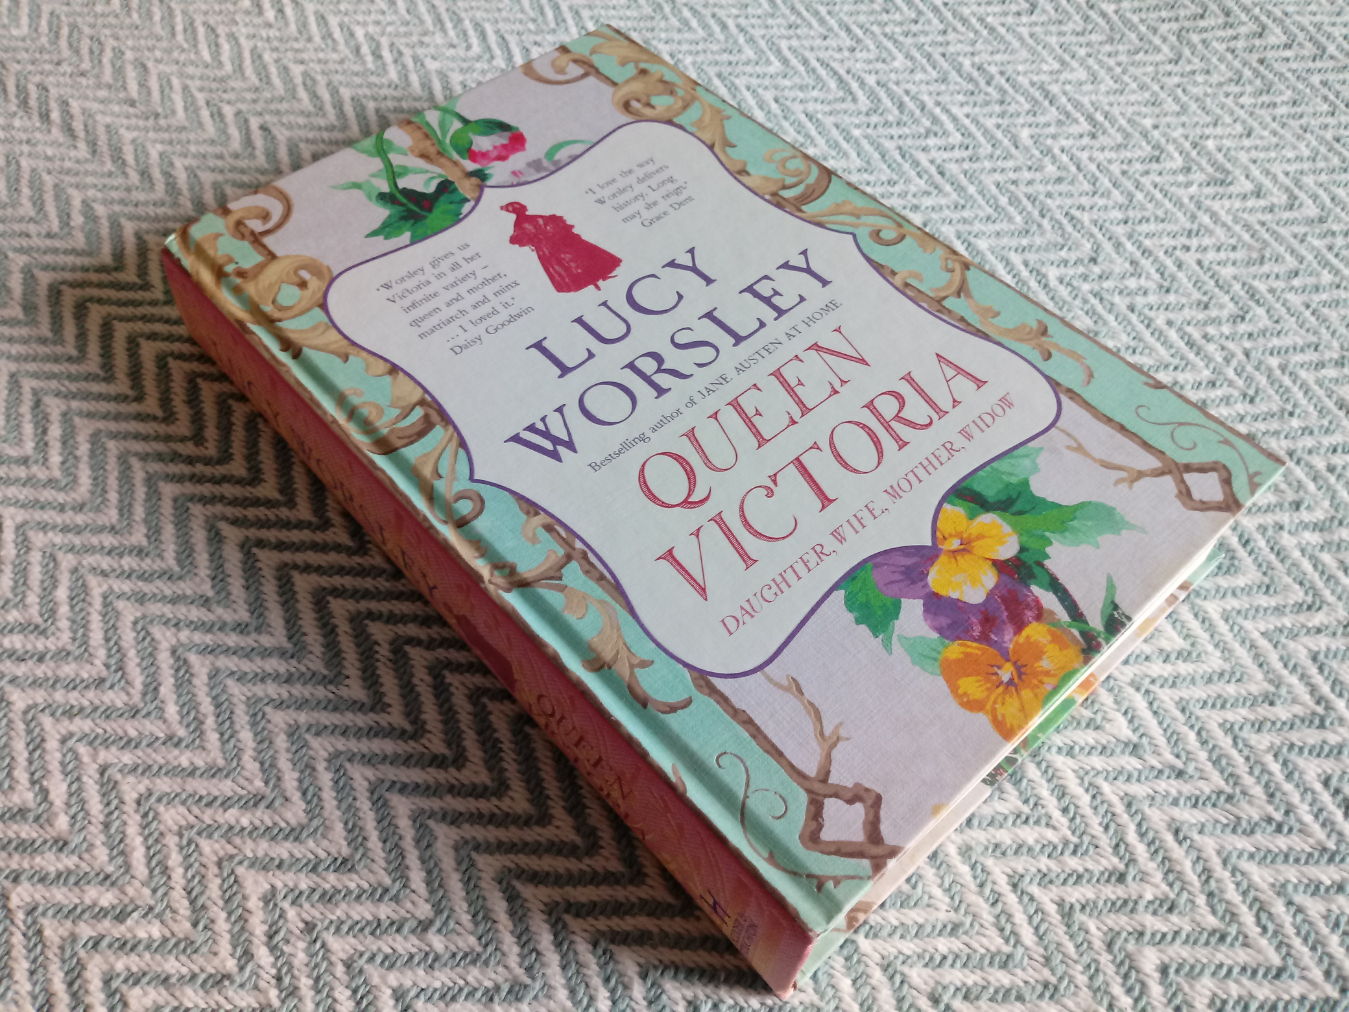 Queen Victoria Daughter, Wife, Mother, Widow by Lucy Worsley hardback book signed by author 421